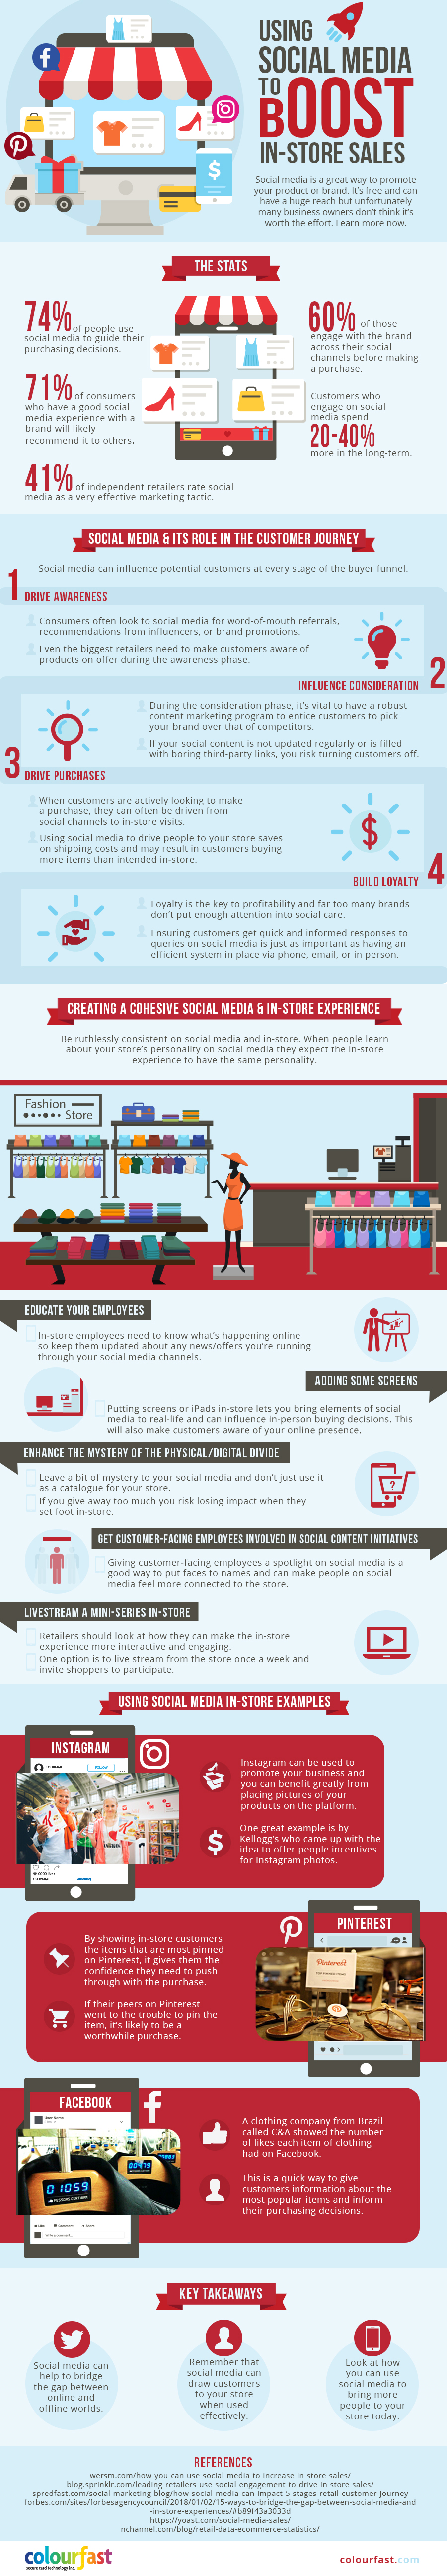 Using-Social Media-to-Boost In-Store-Sales